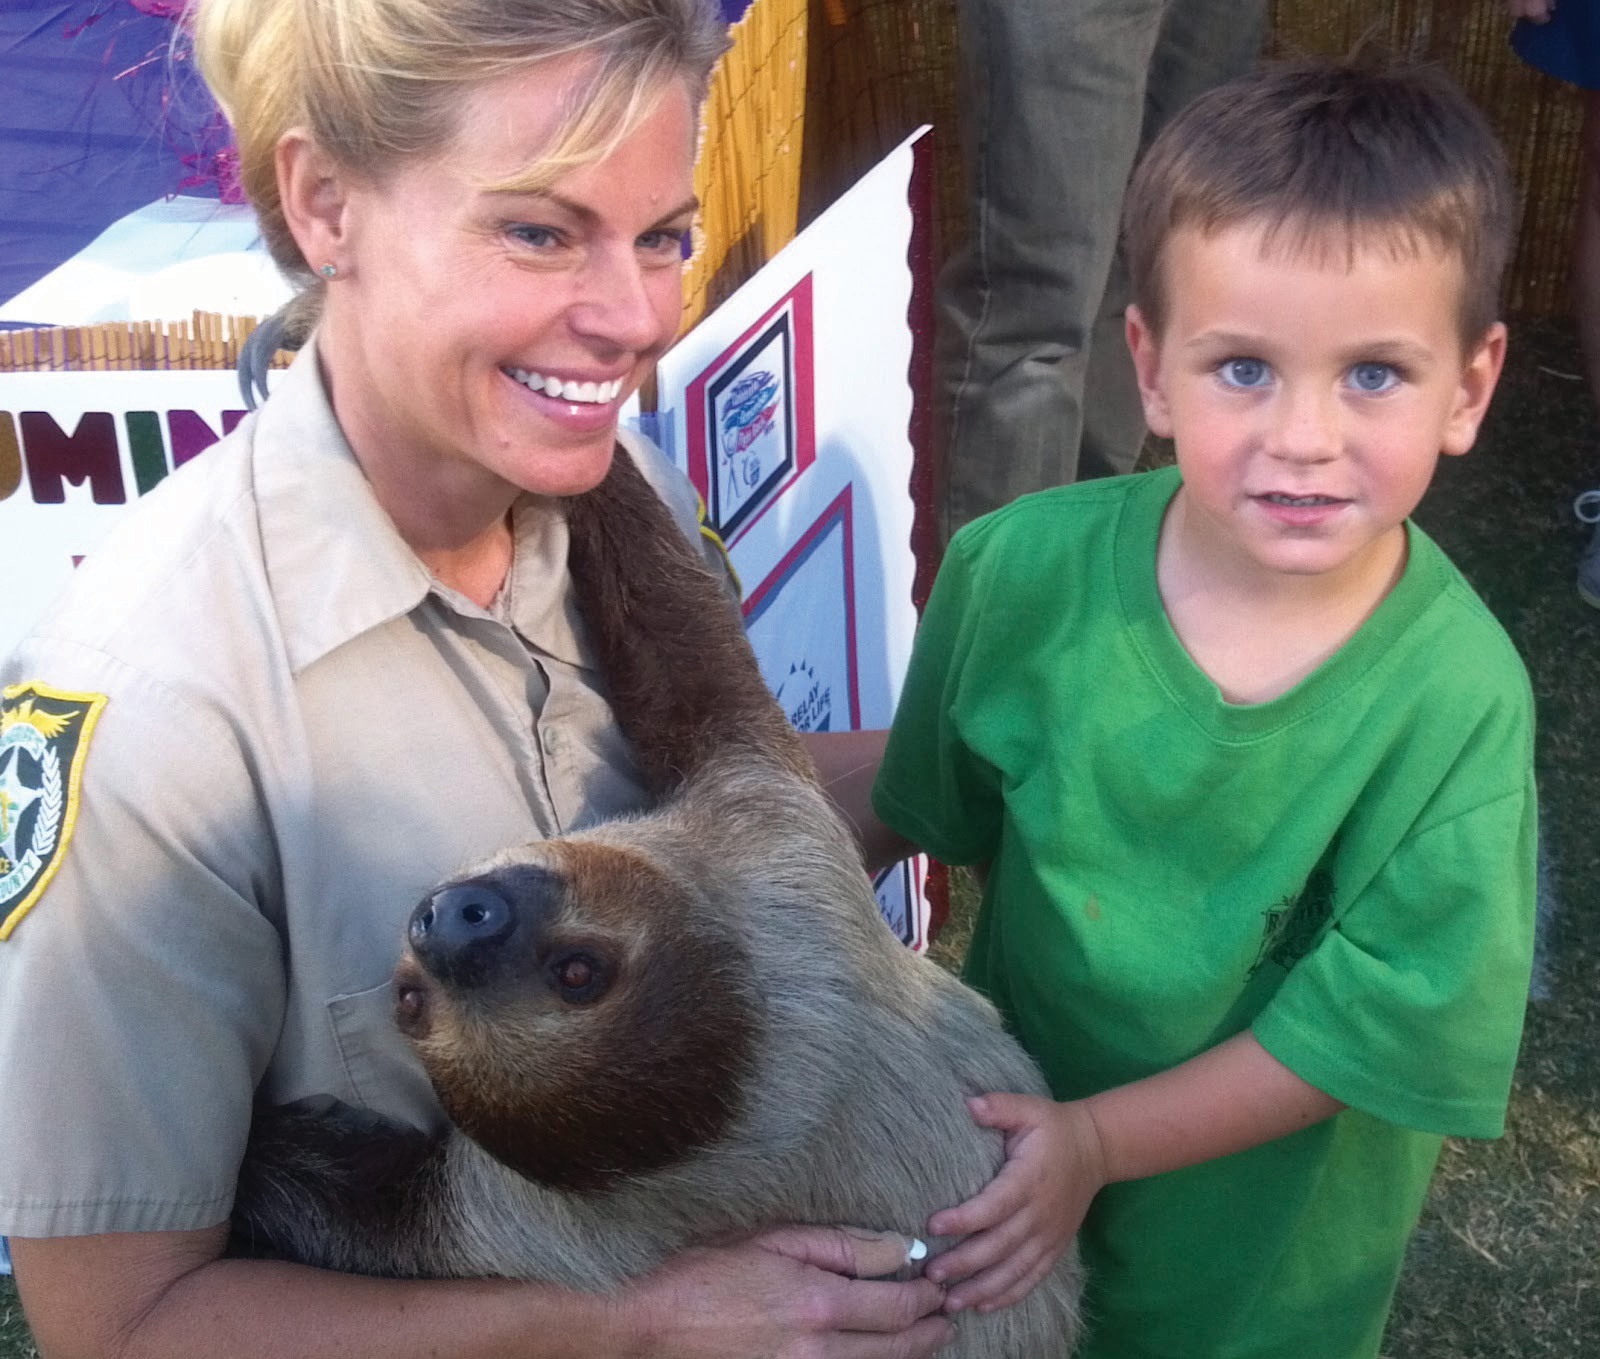 Jeanne Selander shows off a sloth at the Sheriff's farm.